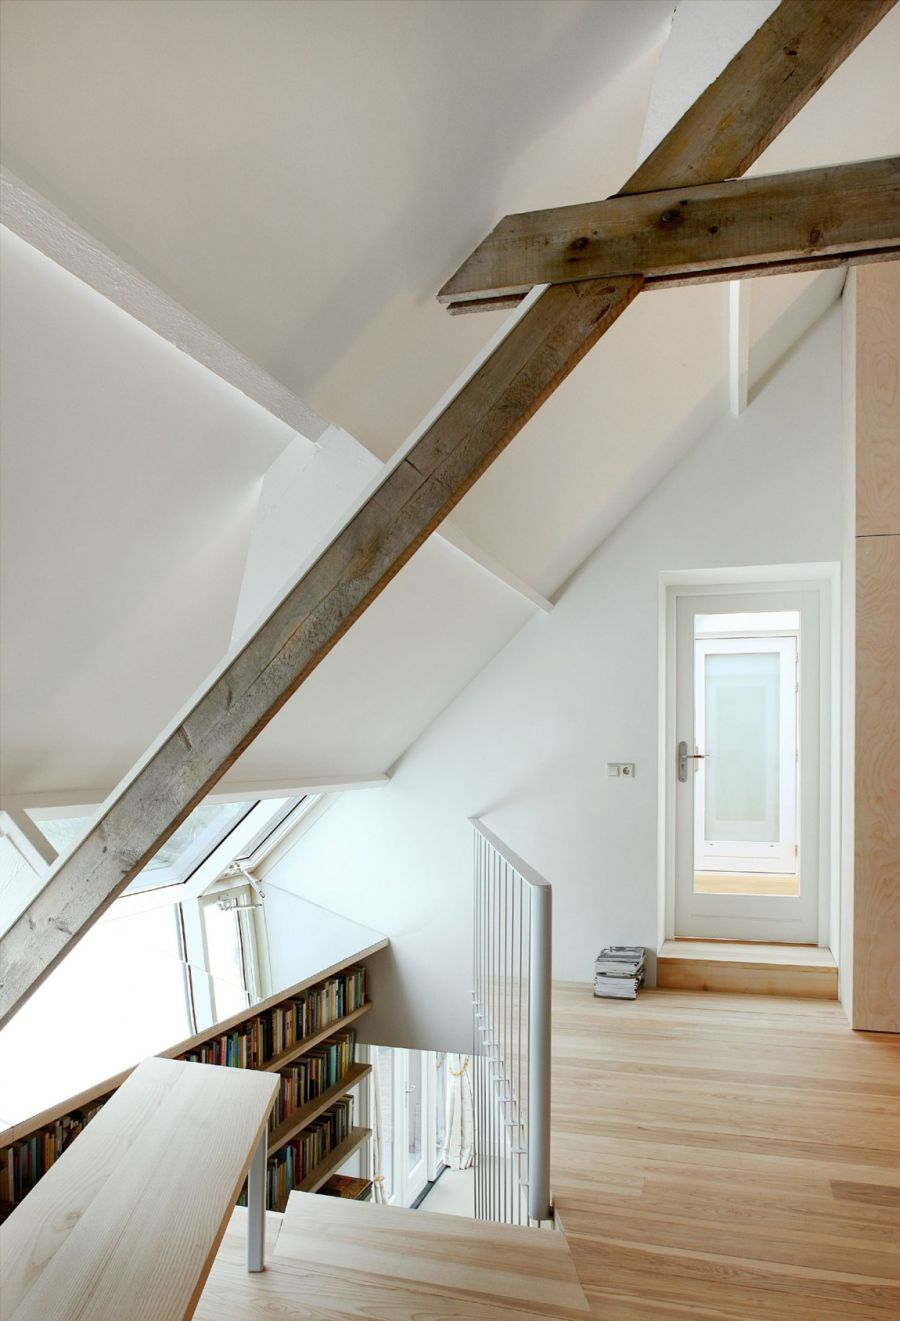 Staircase leading to the attic